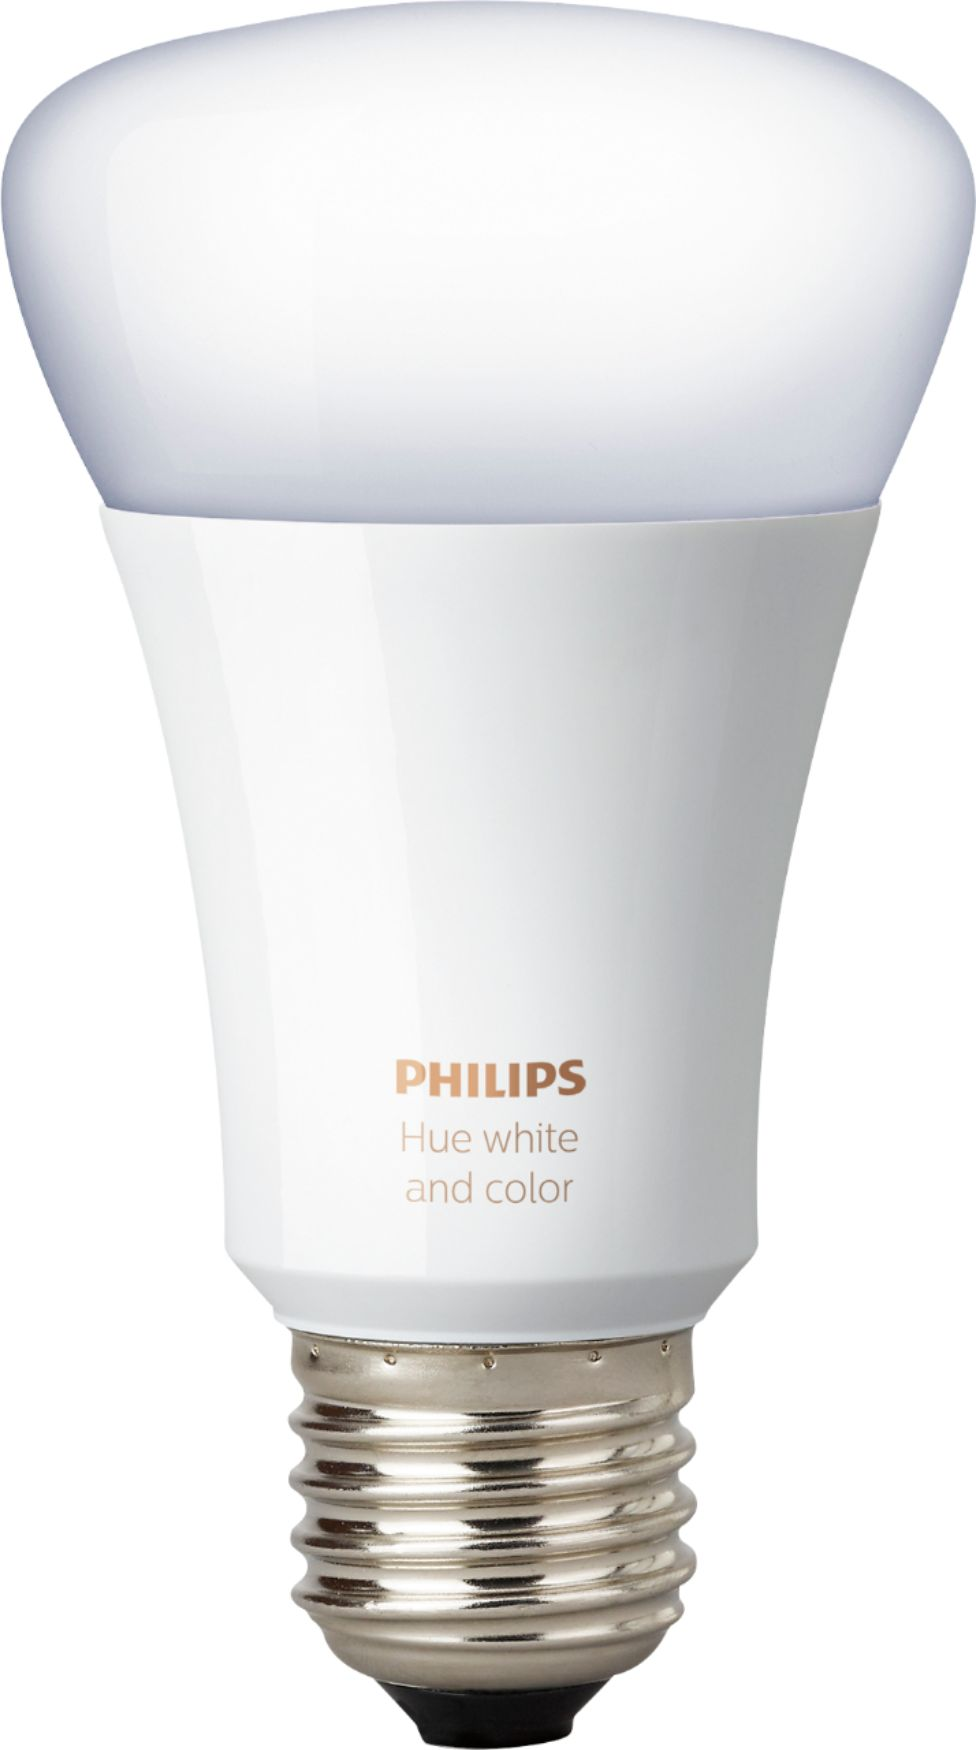 Philips Hub Philips Hue White And Color Ambiance A19 Smart Led Bulb Multicolor